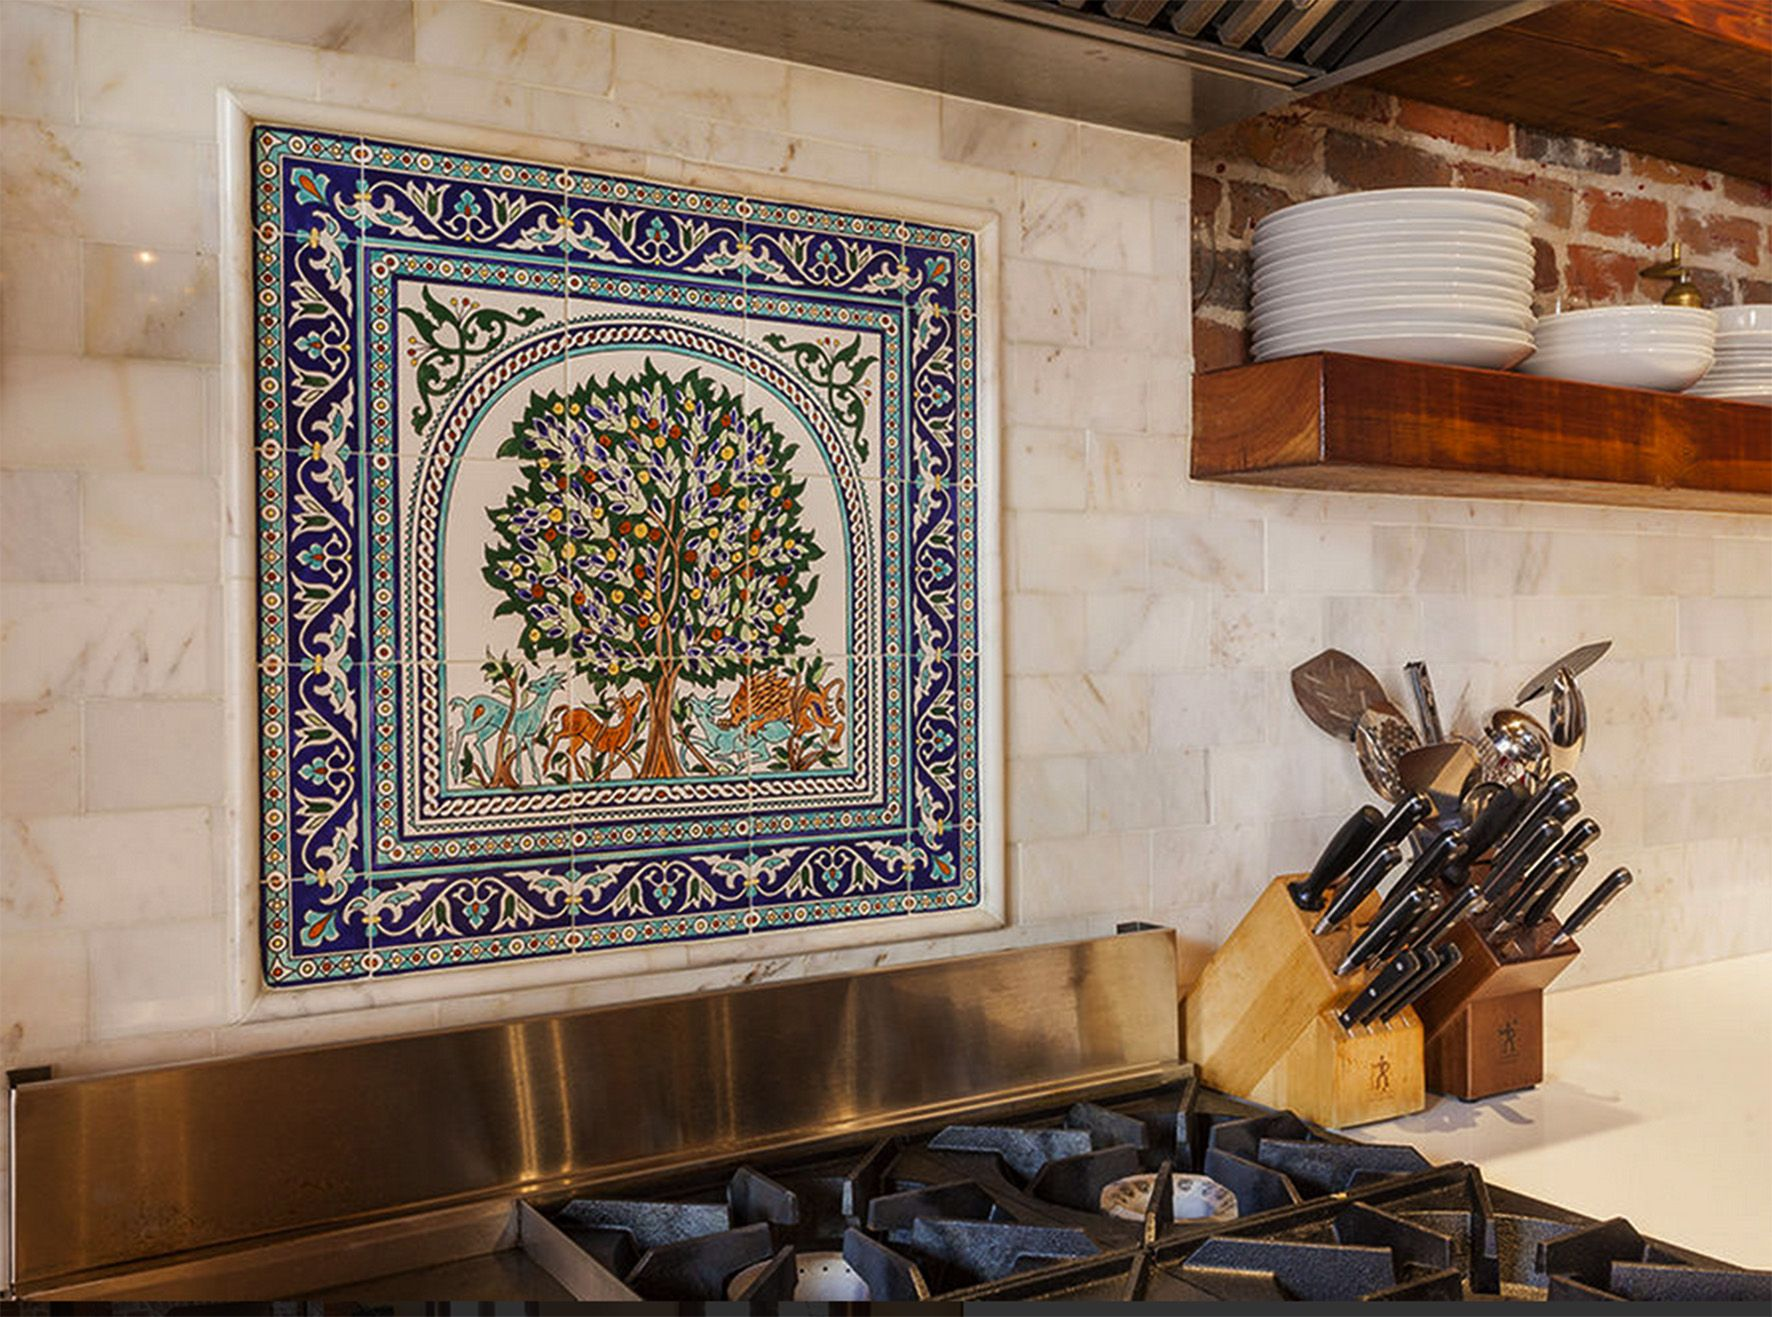 Dotans Kitchen Tile Back Splash With Unique Hand Painted Tiles